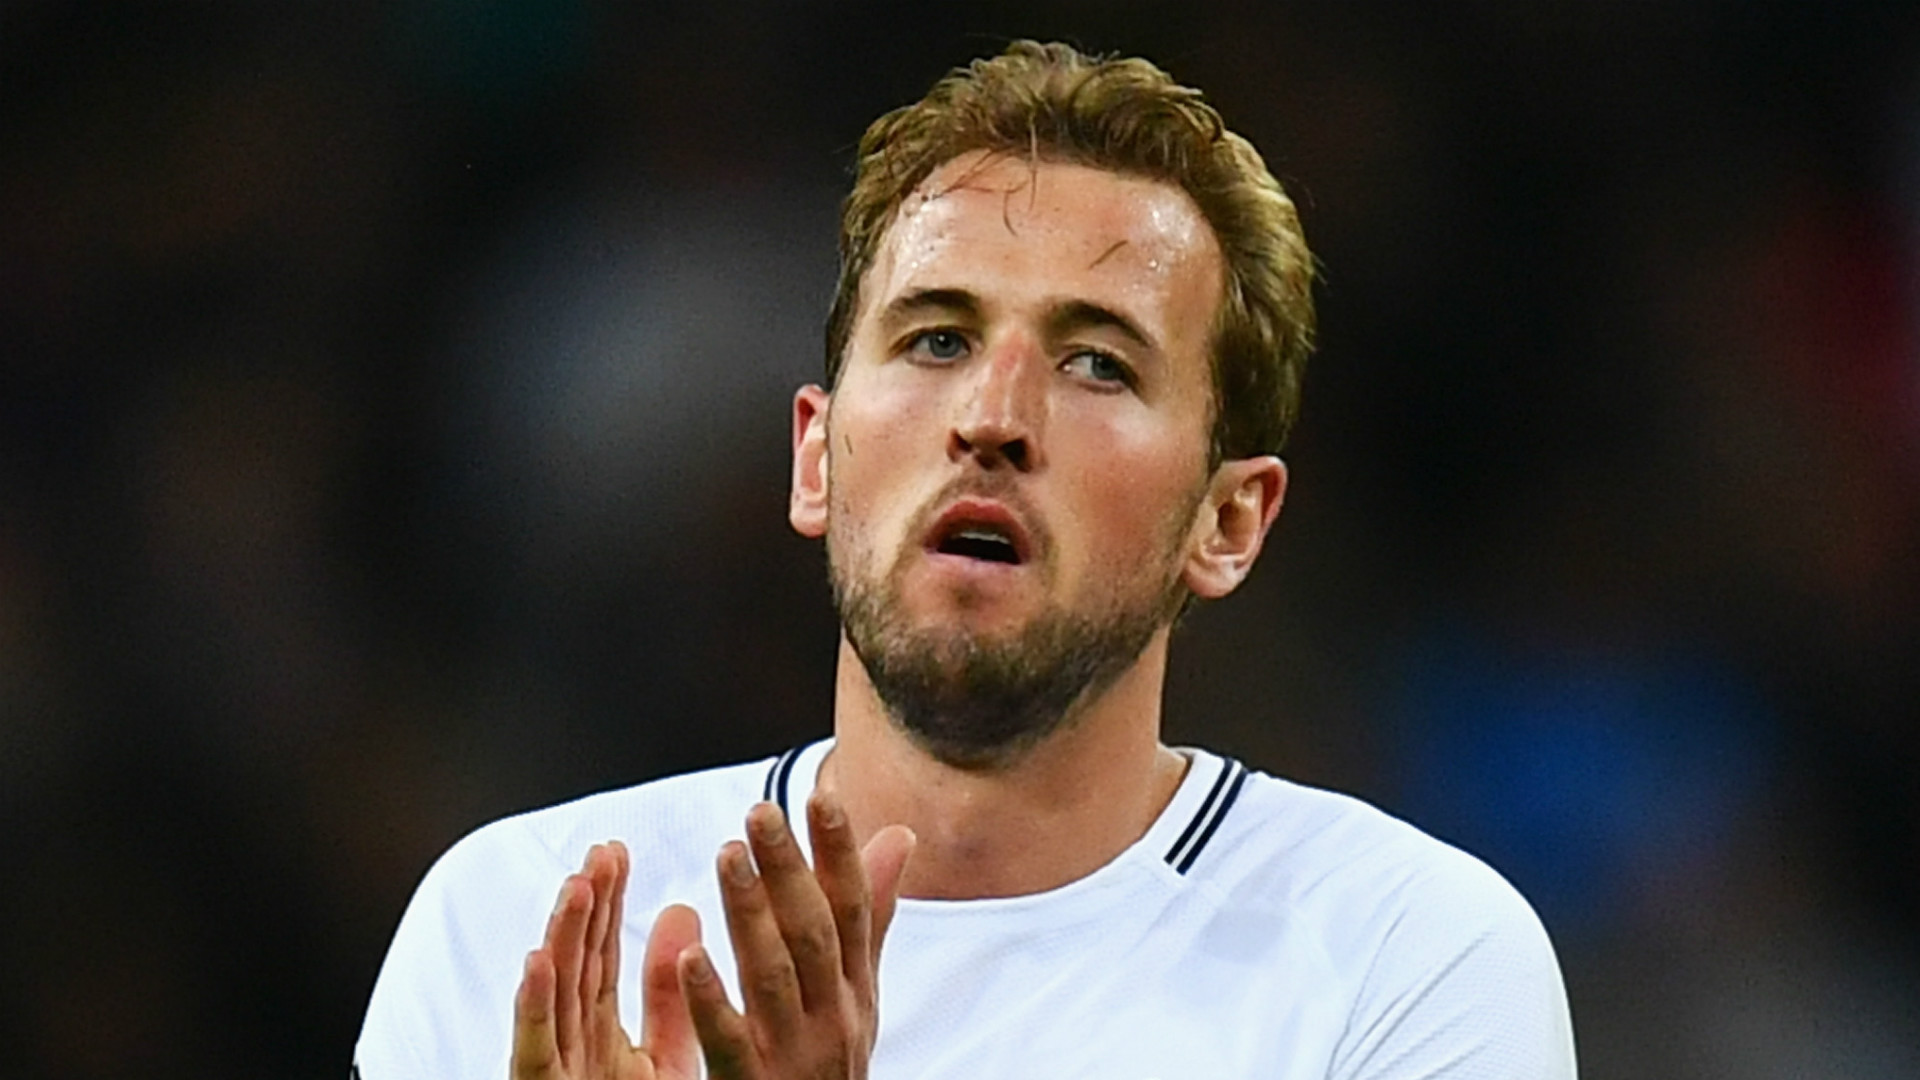 Spurs will lose Kane if they don't win something this year - Sherwood